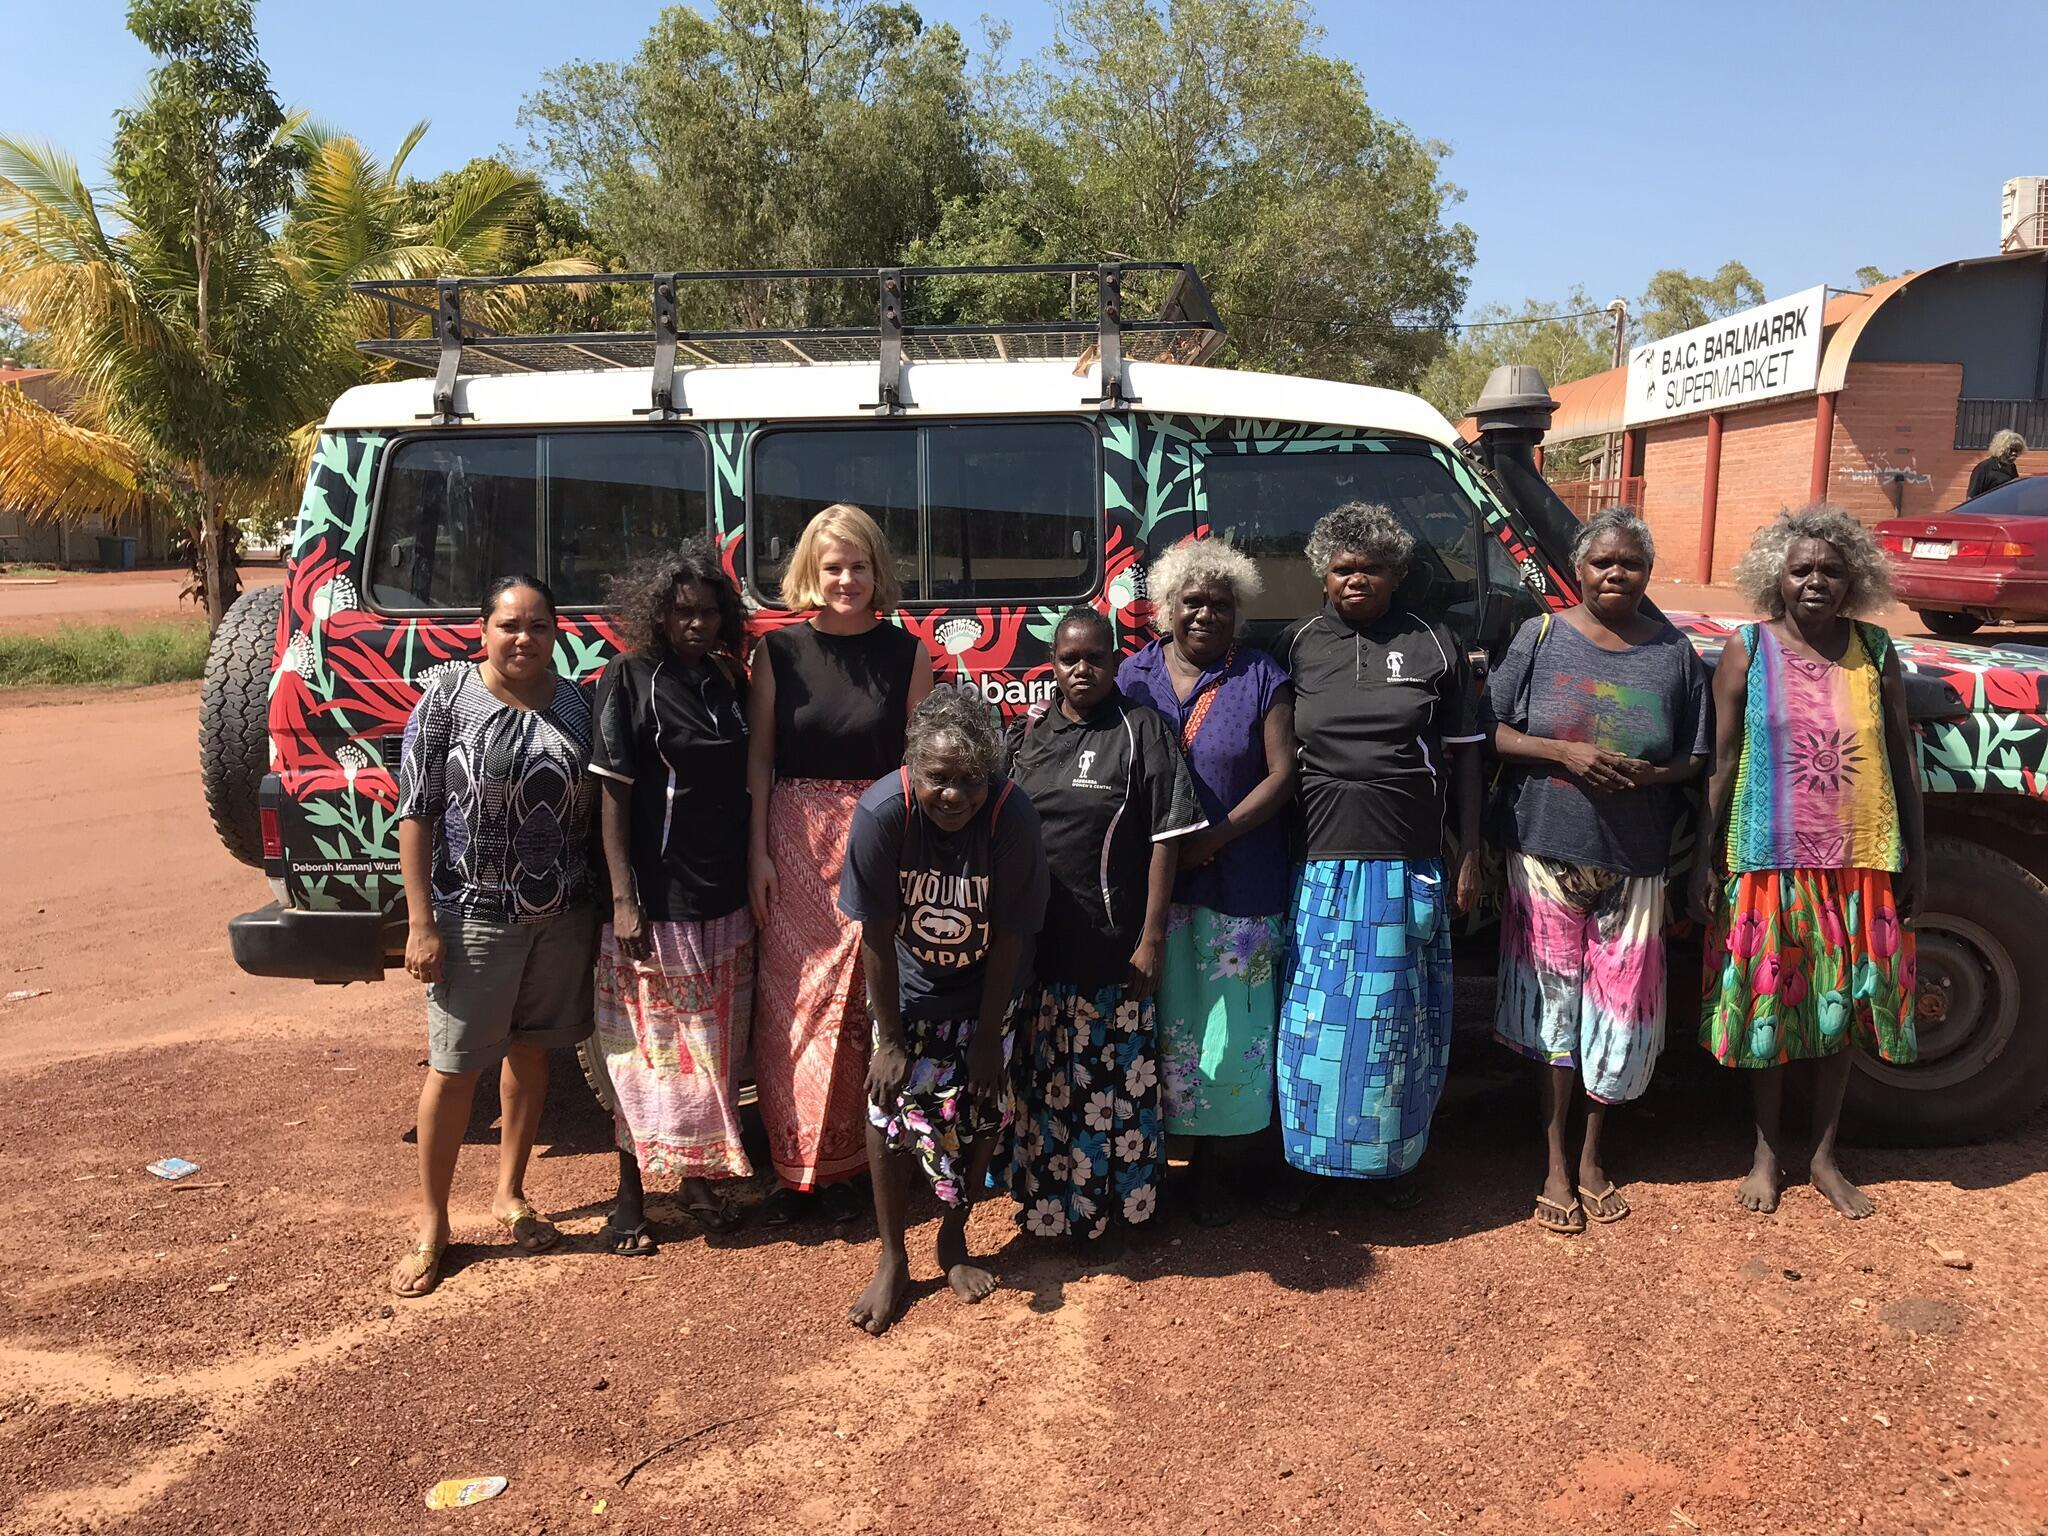 Artists from the Babbara Women's Centre with their jeep, in Maningrida, Northern Territory, Australia